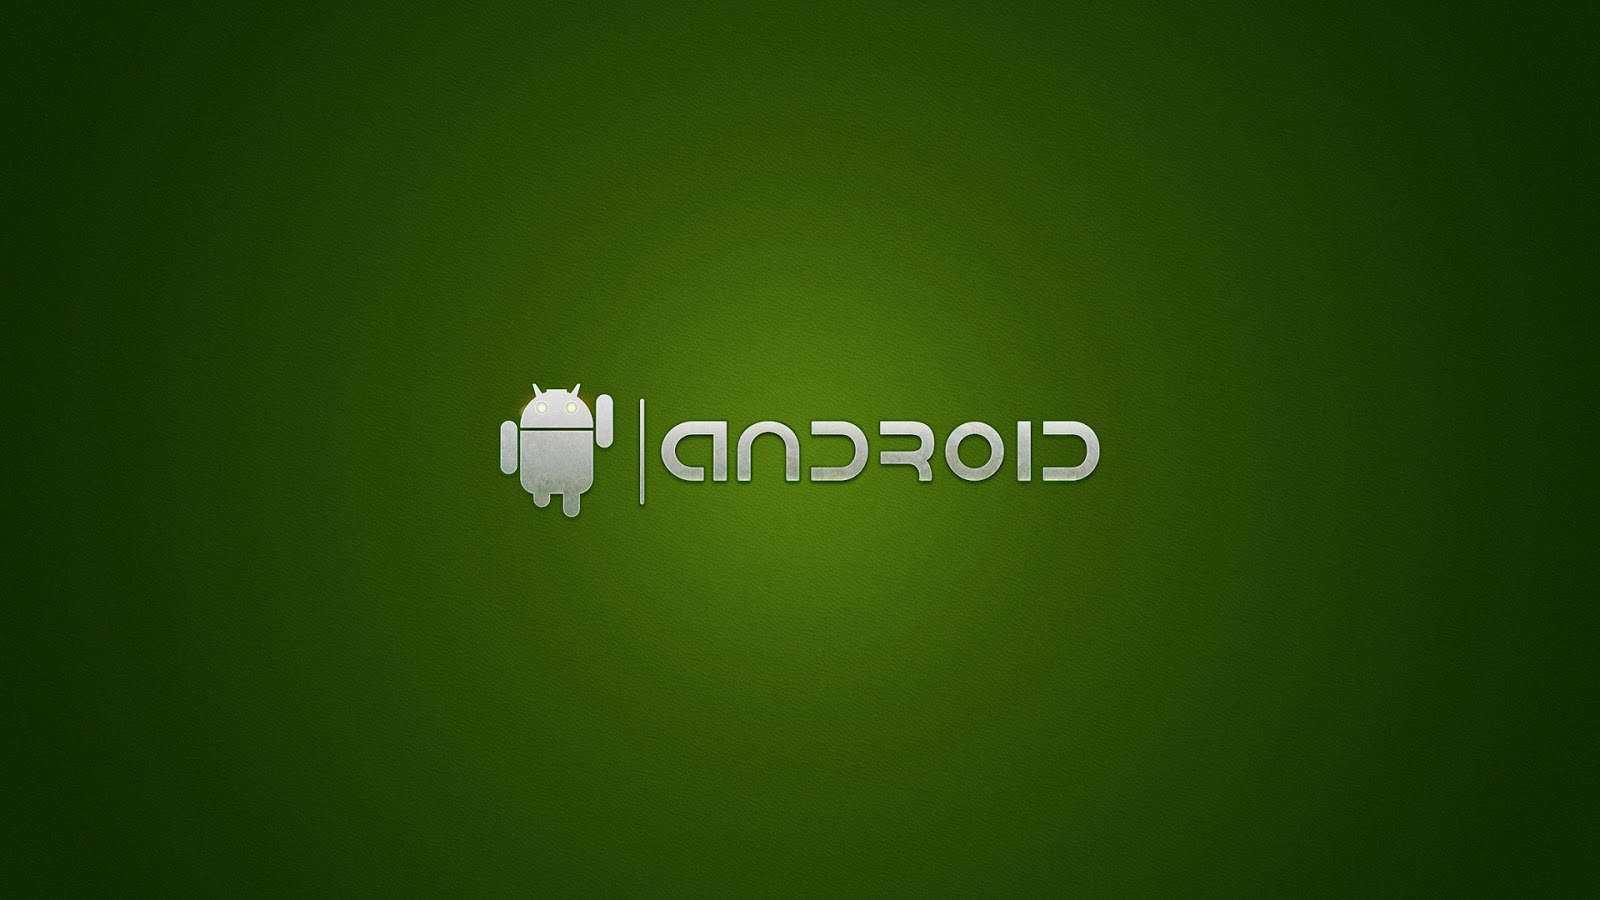 1080p wallpapers android wallpapers hd